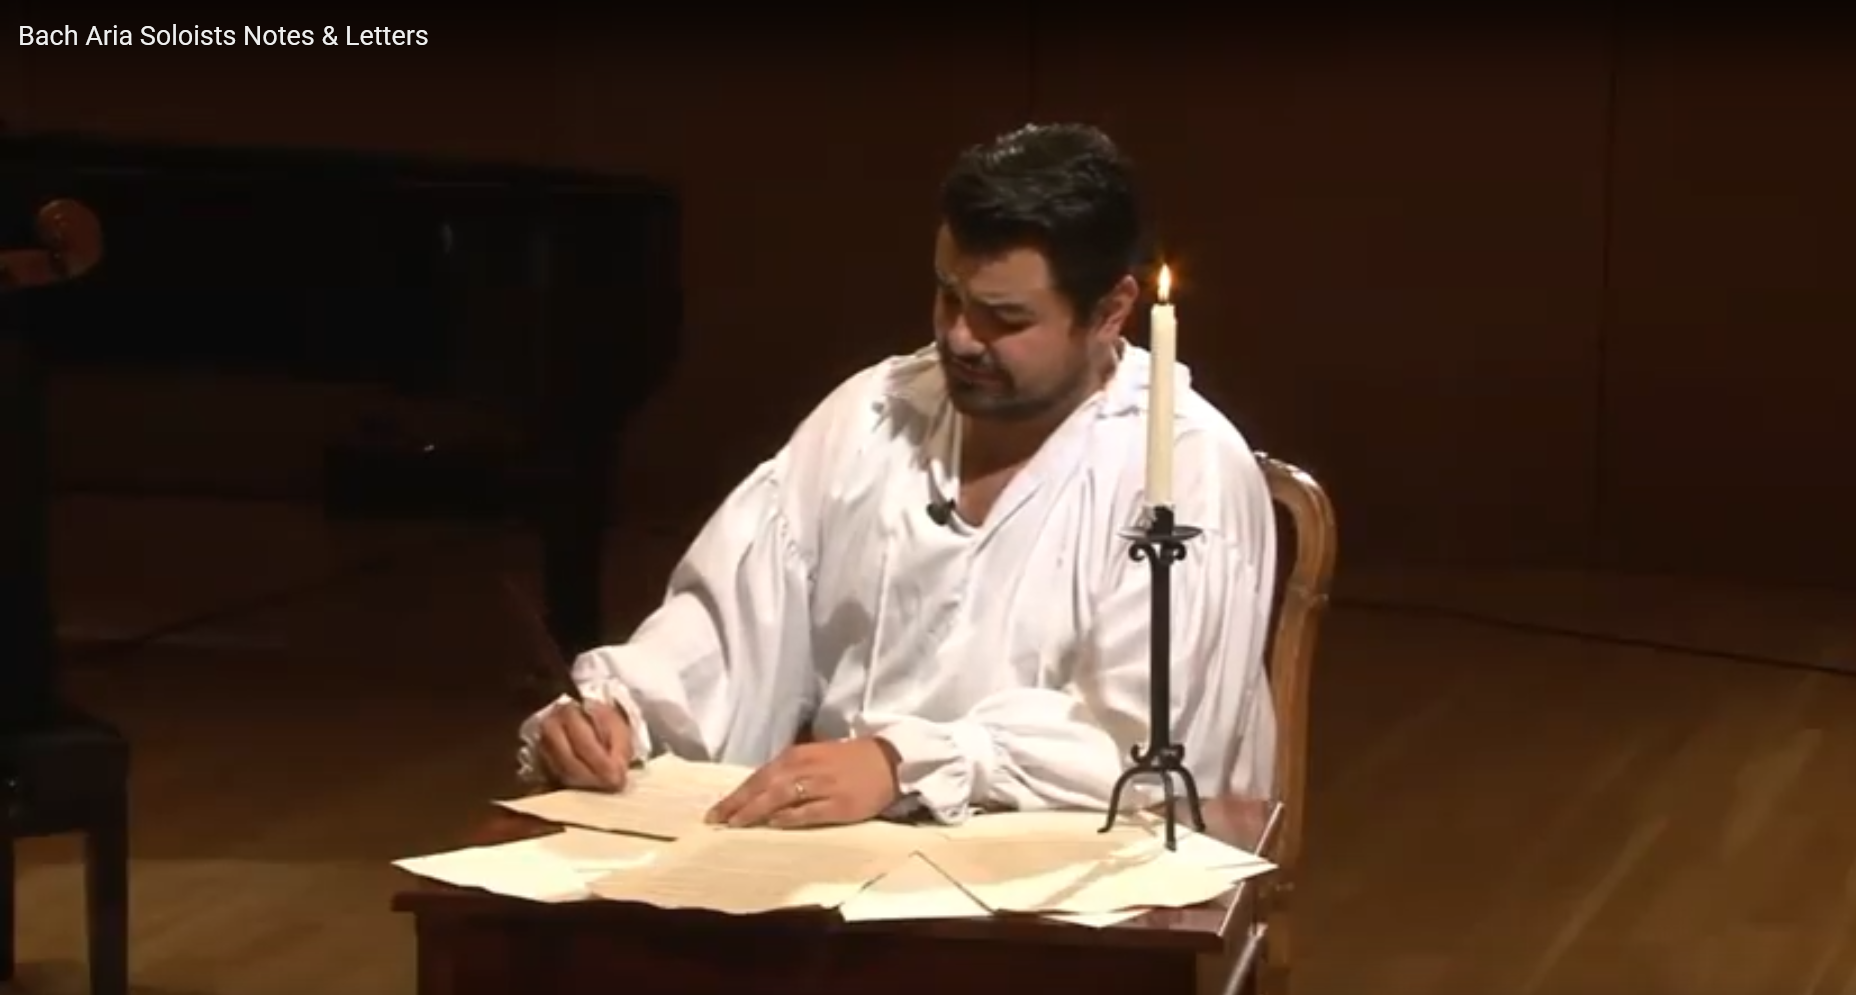 Man in white shirt at desk with letters and candle.